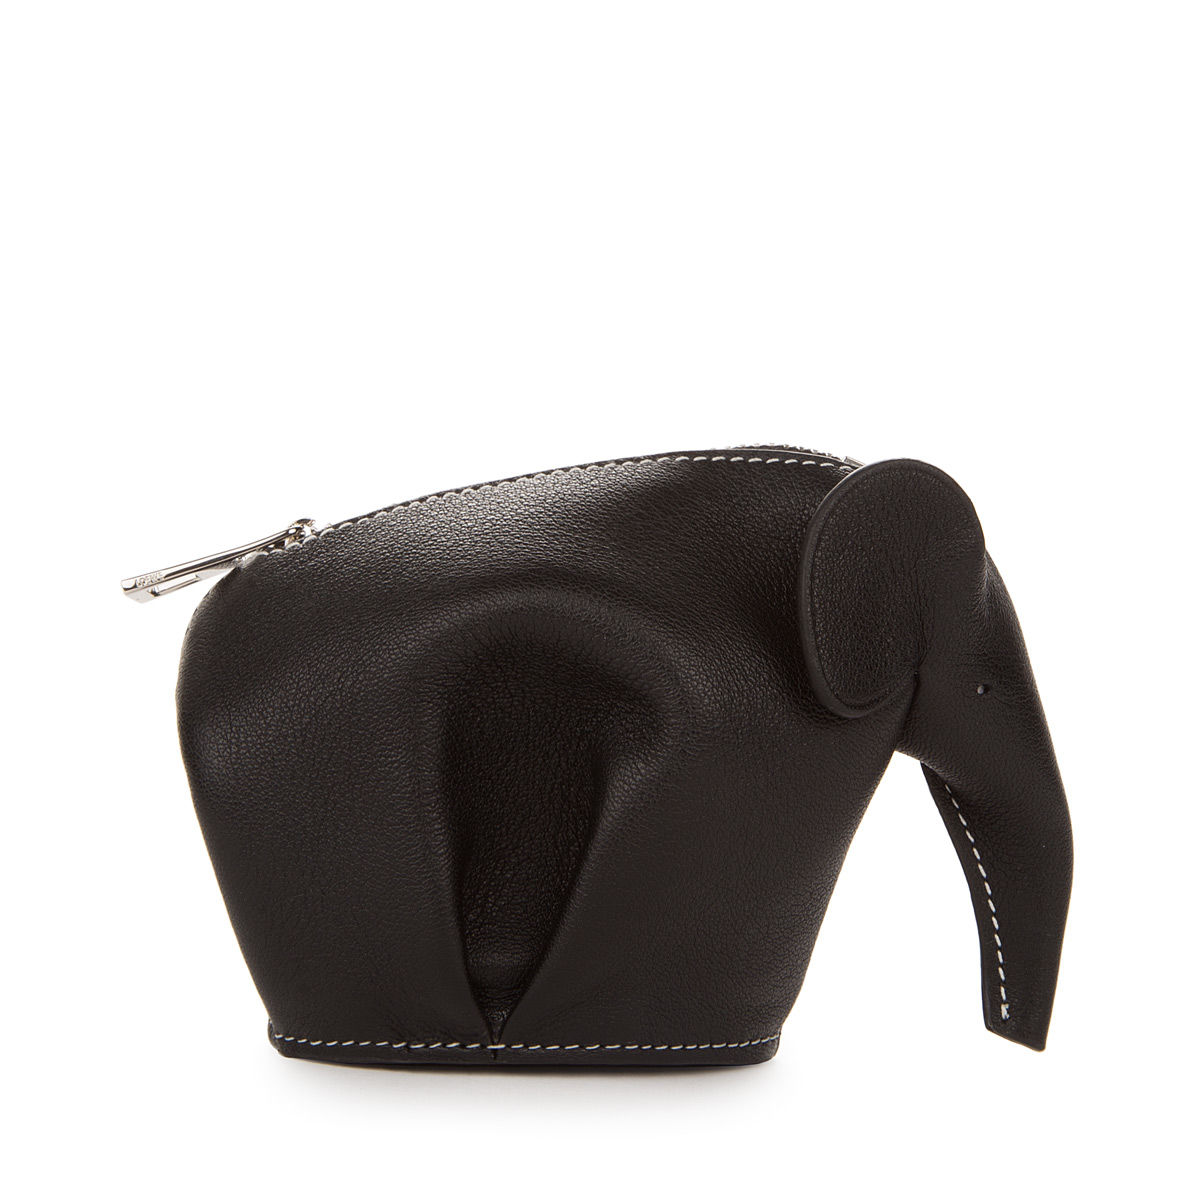 ELEPHANT COIN PURSE 【送料無料】